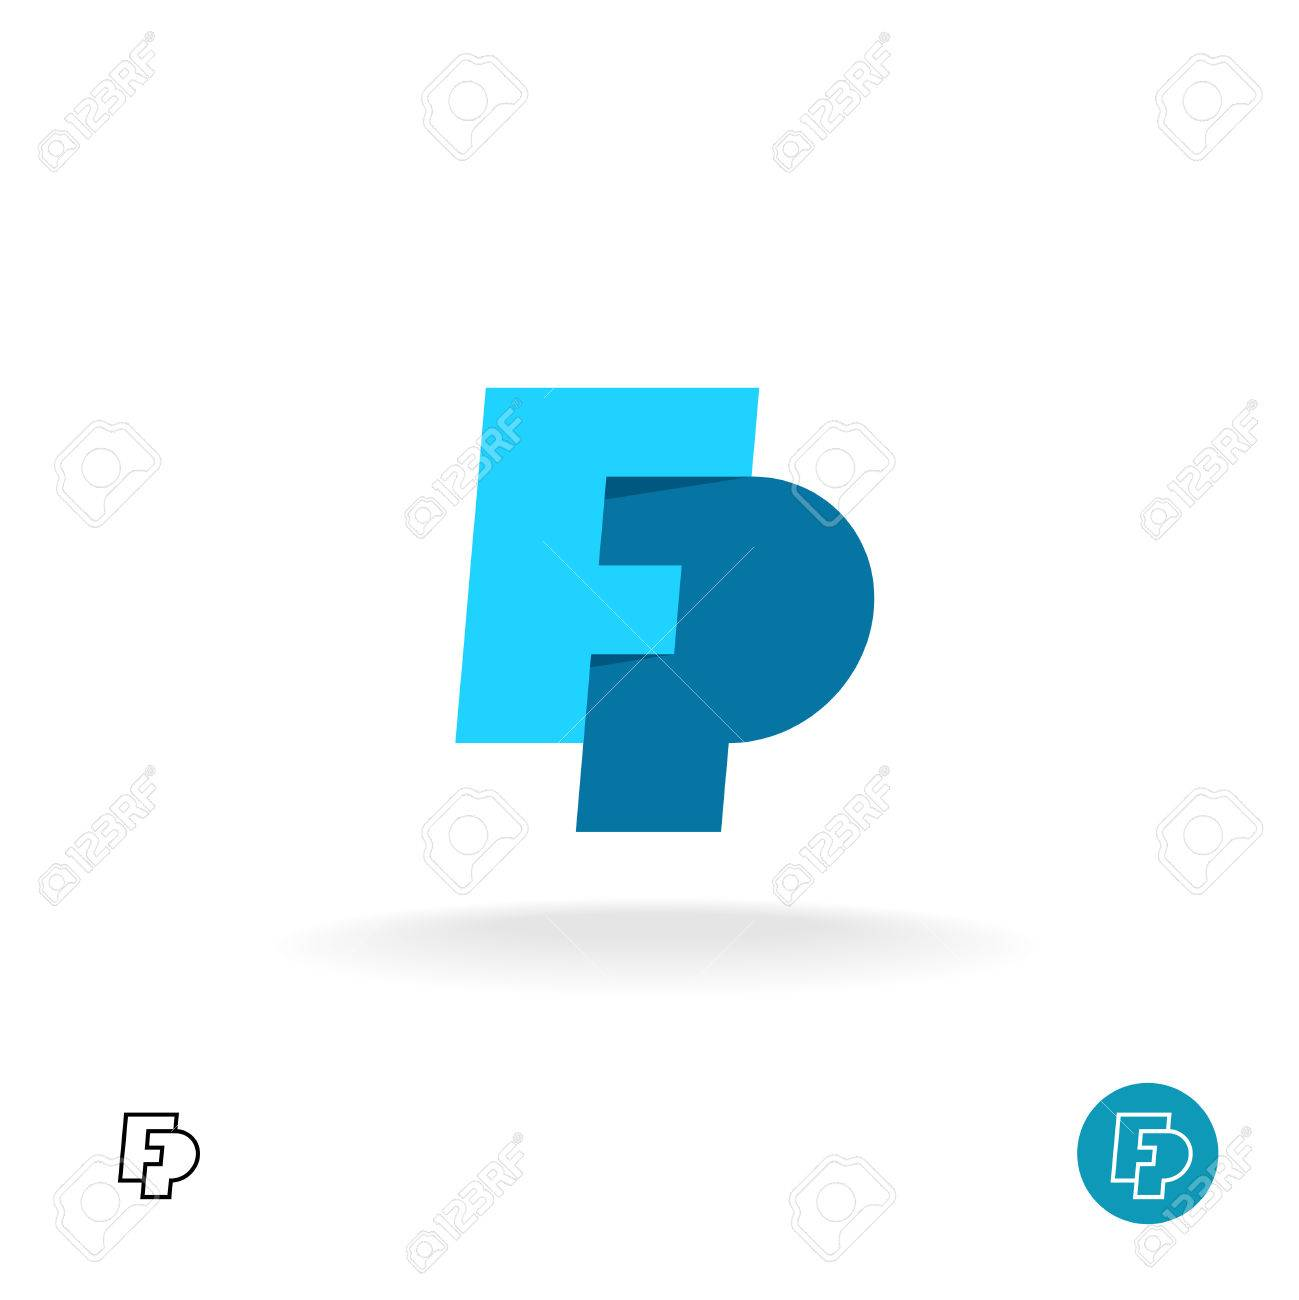 F And P Letters Together Monogram Logo Royalty Free Cliparts ... 8e5fc6fc453f